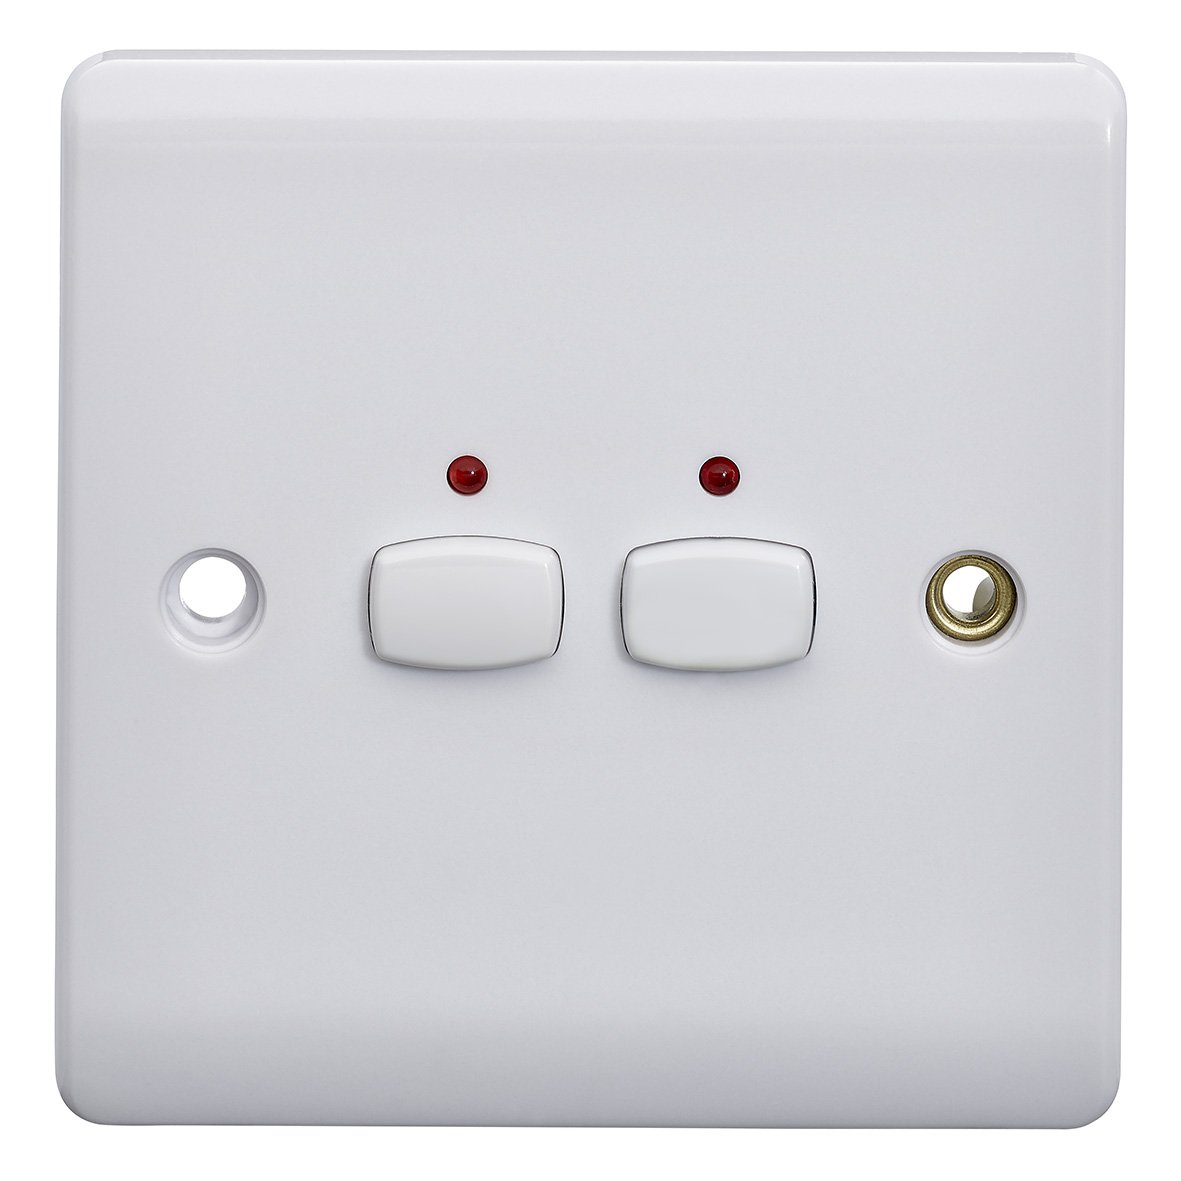 Energenie Miho009 Alexa Compatible Mihome 2 Gang Light Switch 240 V Wiring Up A Double Dimmer Uk White Diy Tools